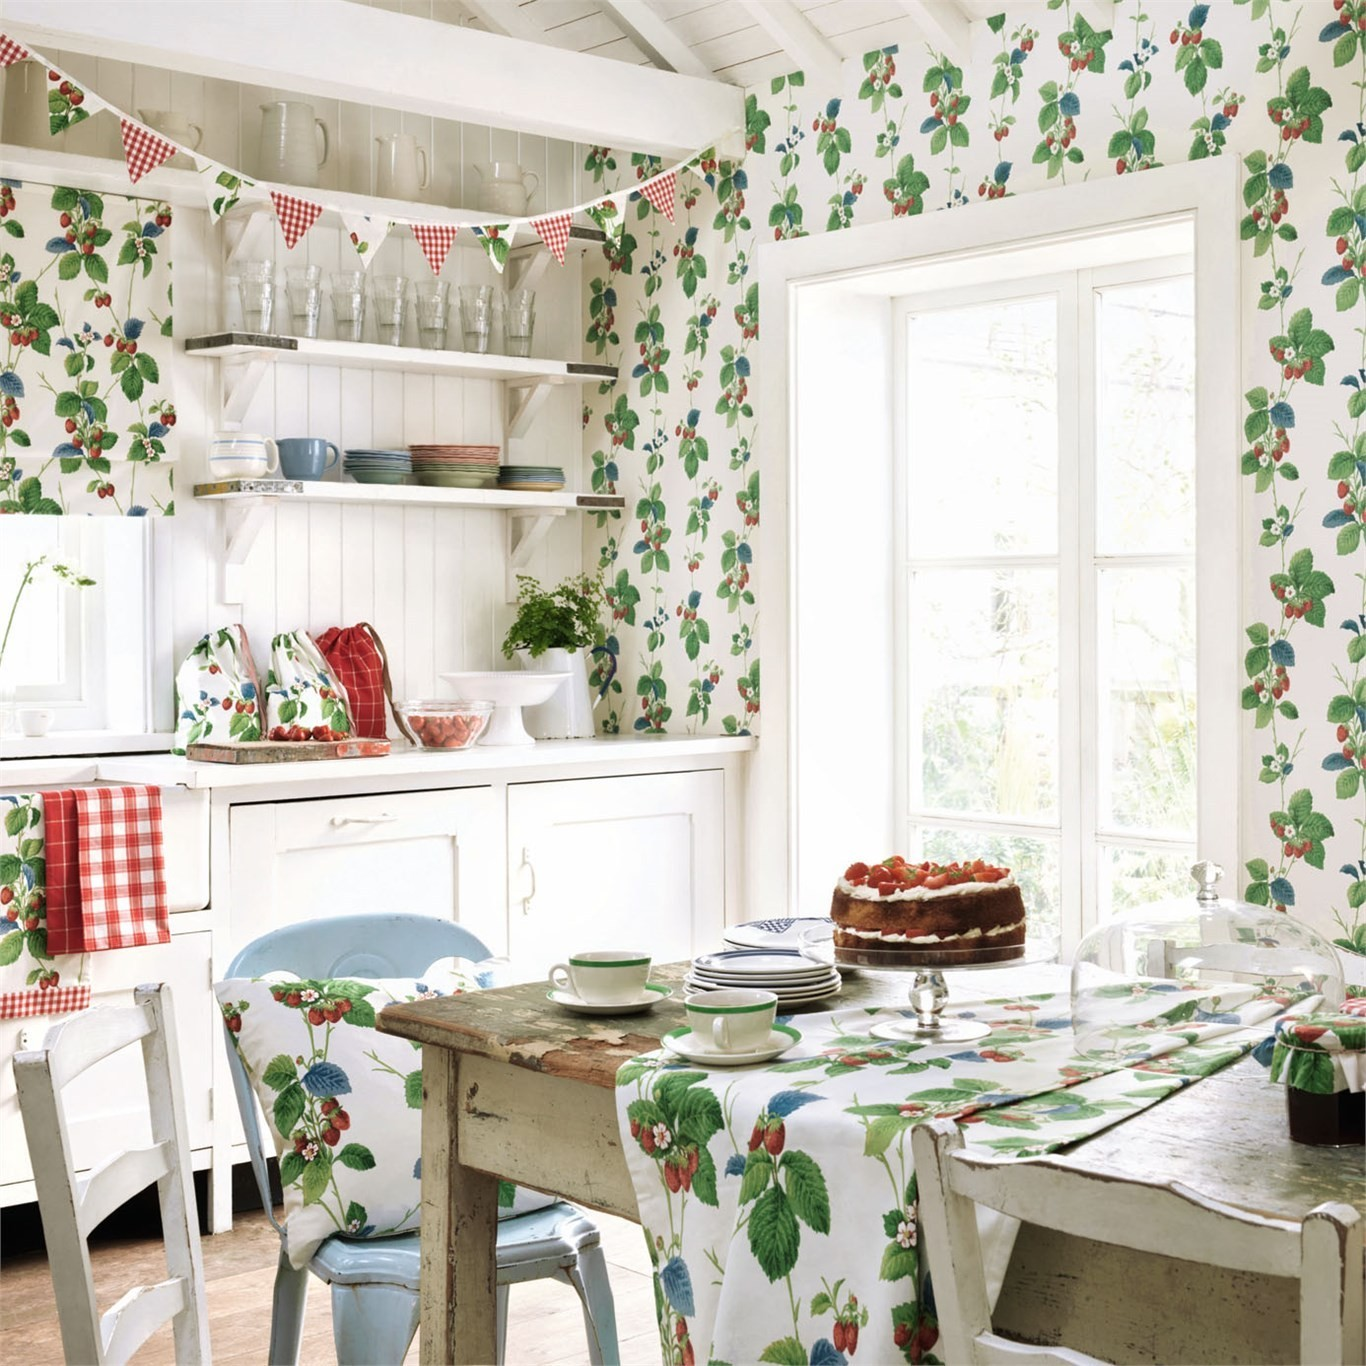 The Vintage-Inspired Wallpaper Line We're Obsessing Over